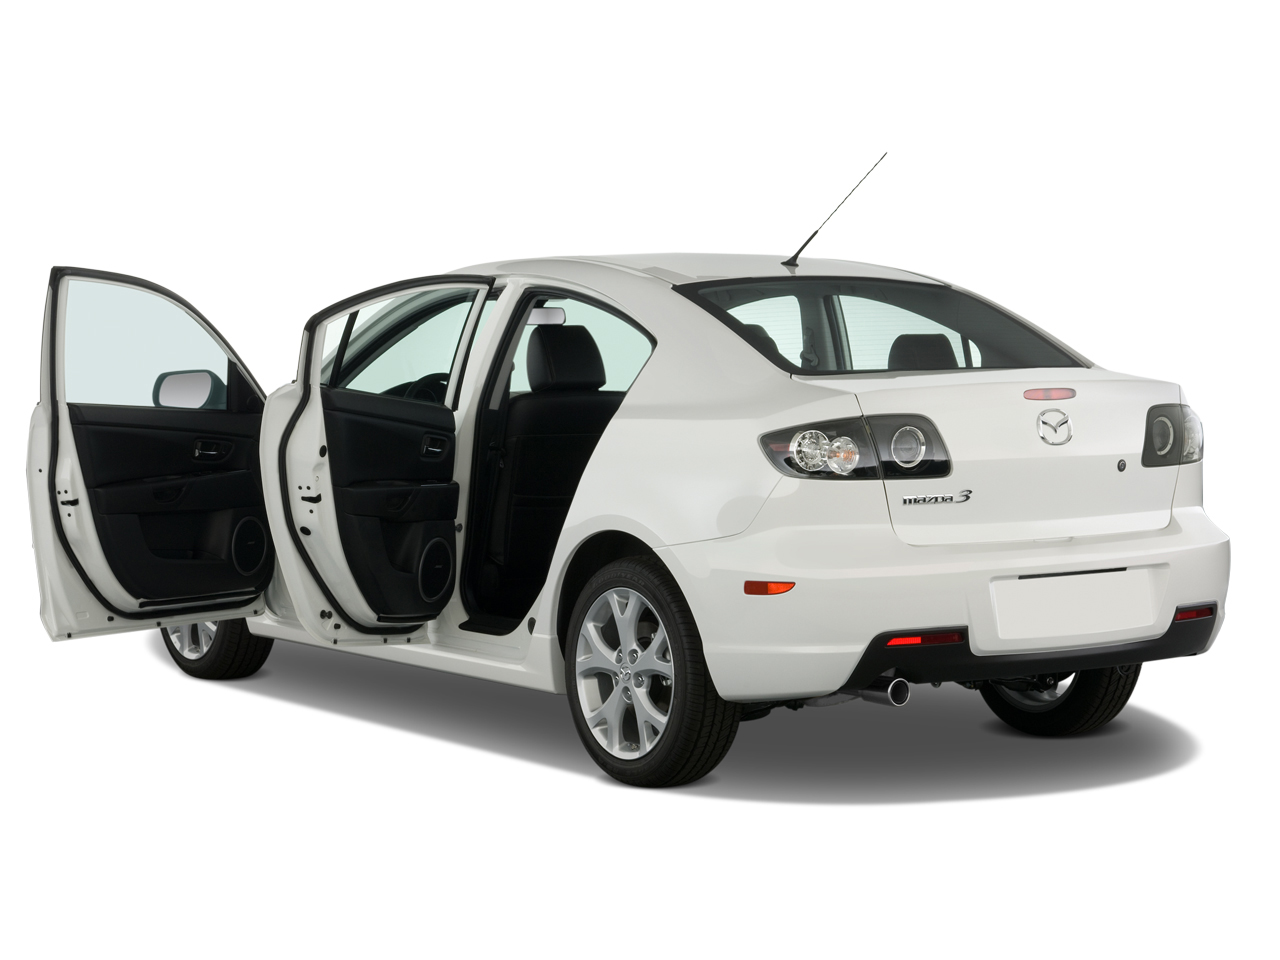 Recall Central Windshield Motor Issues For 2008 Mazda3